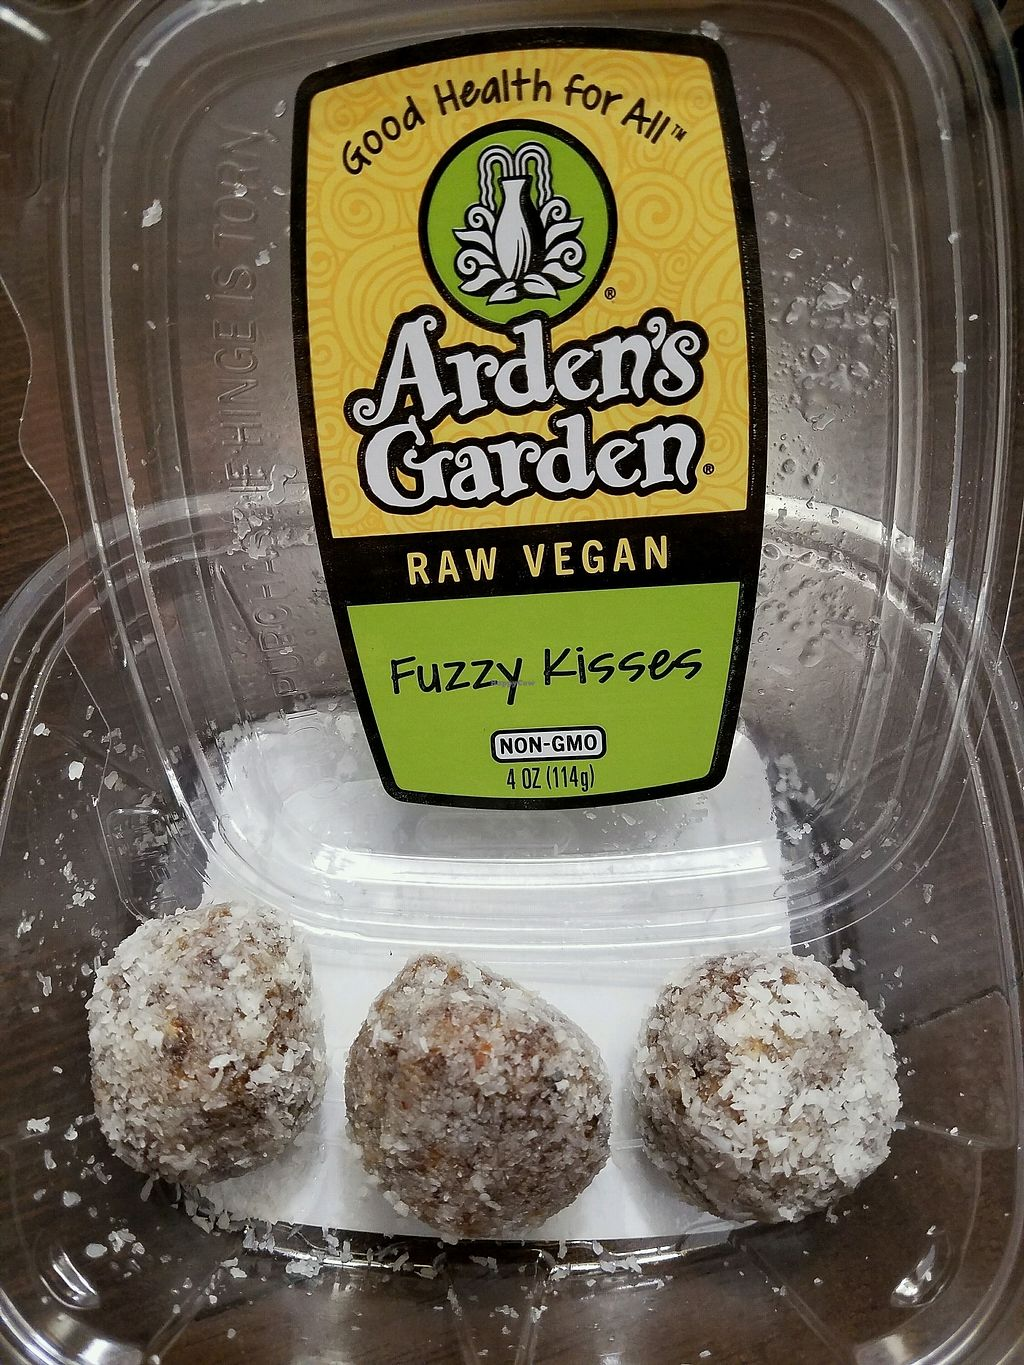 """Photo of Arden's Garden - East Point  by <a href=""""/members/profile/Dark%26Stormy"""">Dark&Stormy</a> <br/>Fuzzy Kisses, great vegan snack! <br/> October 31, 2017  - <a href='/contact/abuse/image/33775/320322'>Report</a>"""